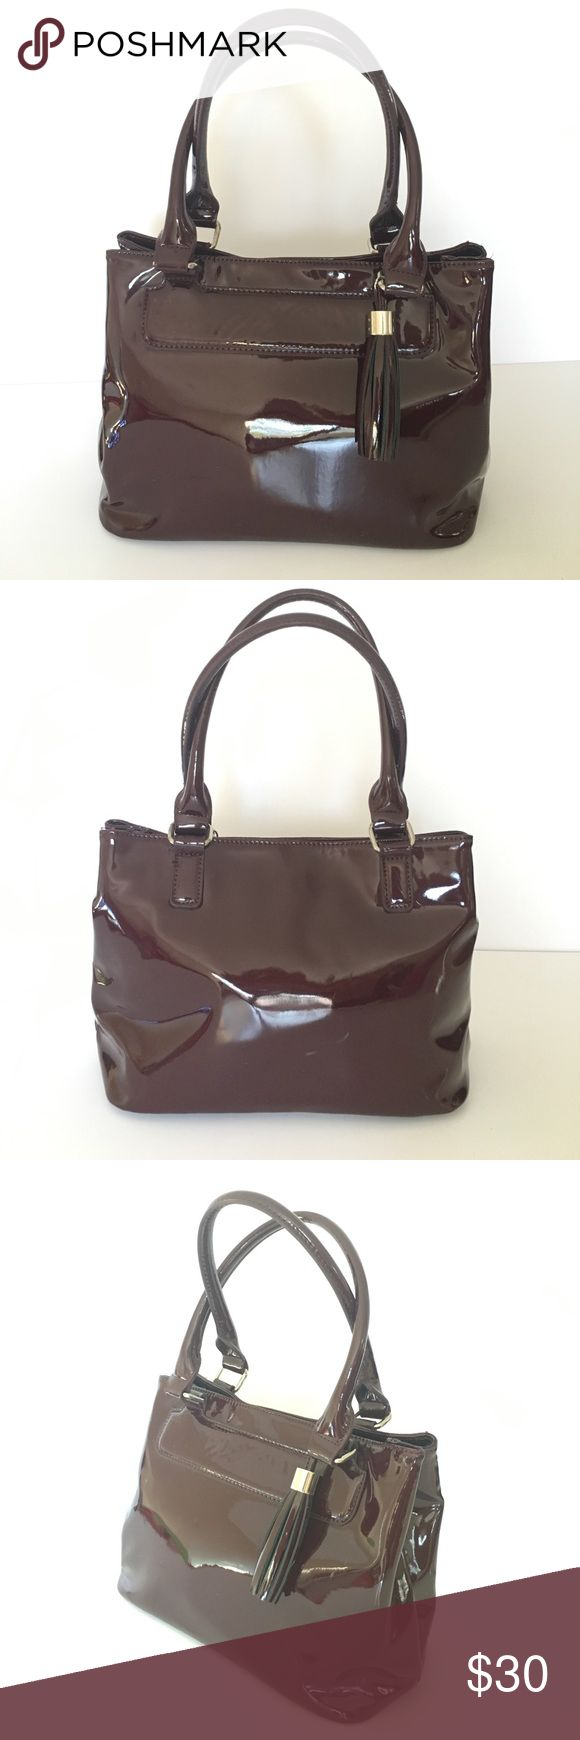 Marks & Spencer Collection burgundy glossy bag Marks & Spencer Collection burgundy glossy with tassel,  handbag in gently used condition Marks & Spencer Bags